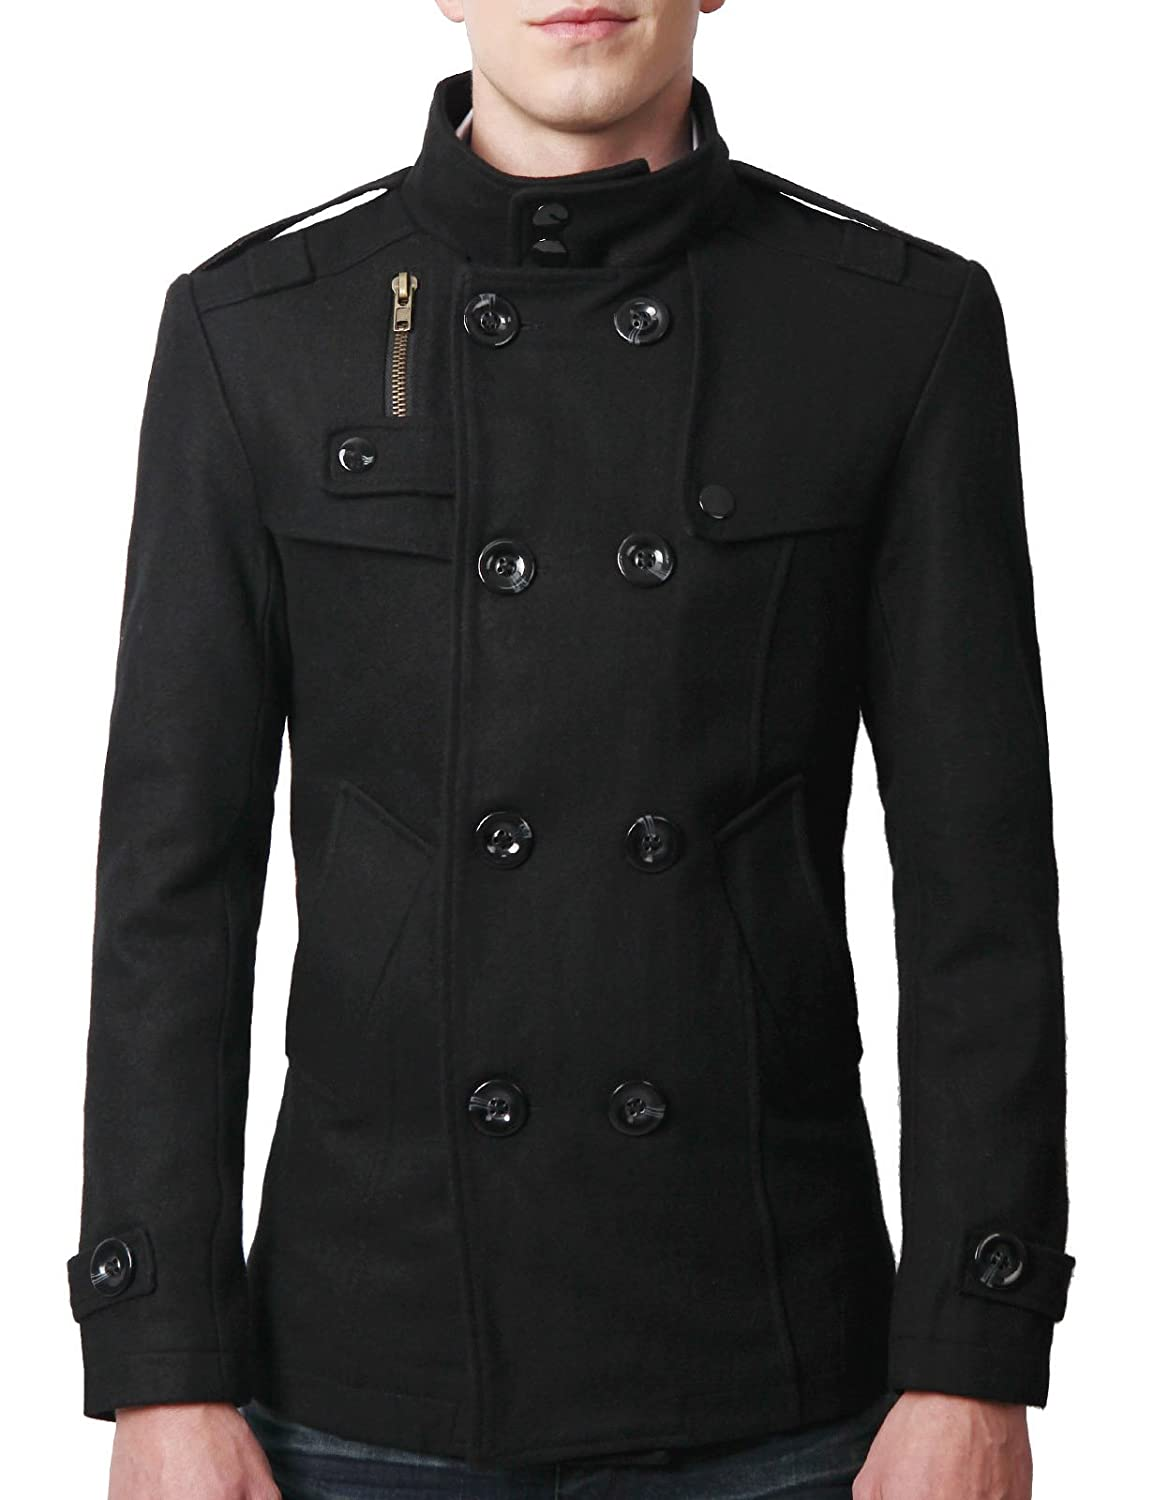 Pea Coat Coats: manakamanamobilecenter.tk - Your Online Men's Outerwear Store! Get 5% in rewards with Club O! overstock anniversary sale up to 70% off* + FREE SHIPPING* Shop Now > Kenneth Cole New York Mens Pea Coat Wool Long Sleeves - XL. New Arrival.